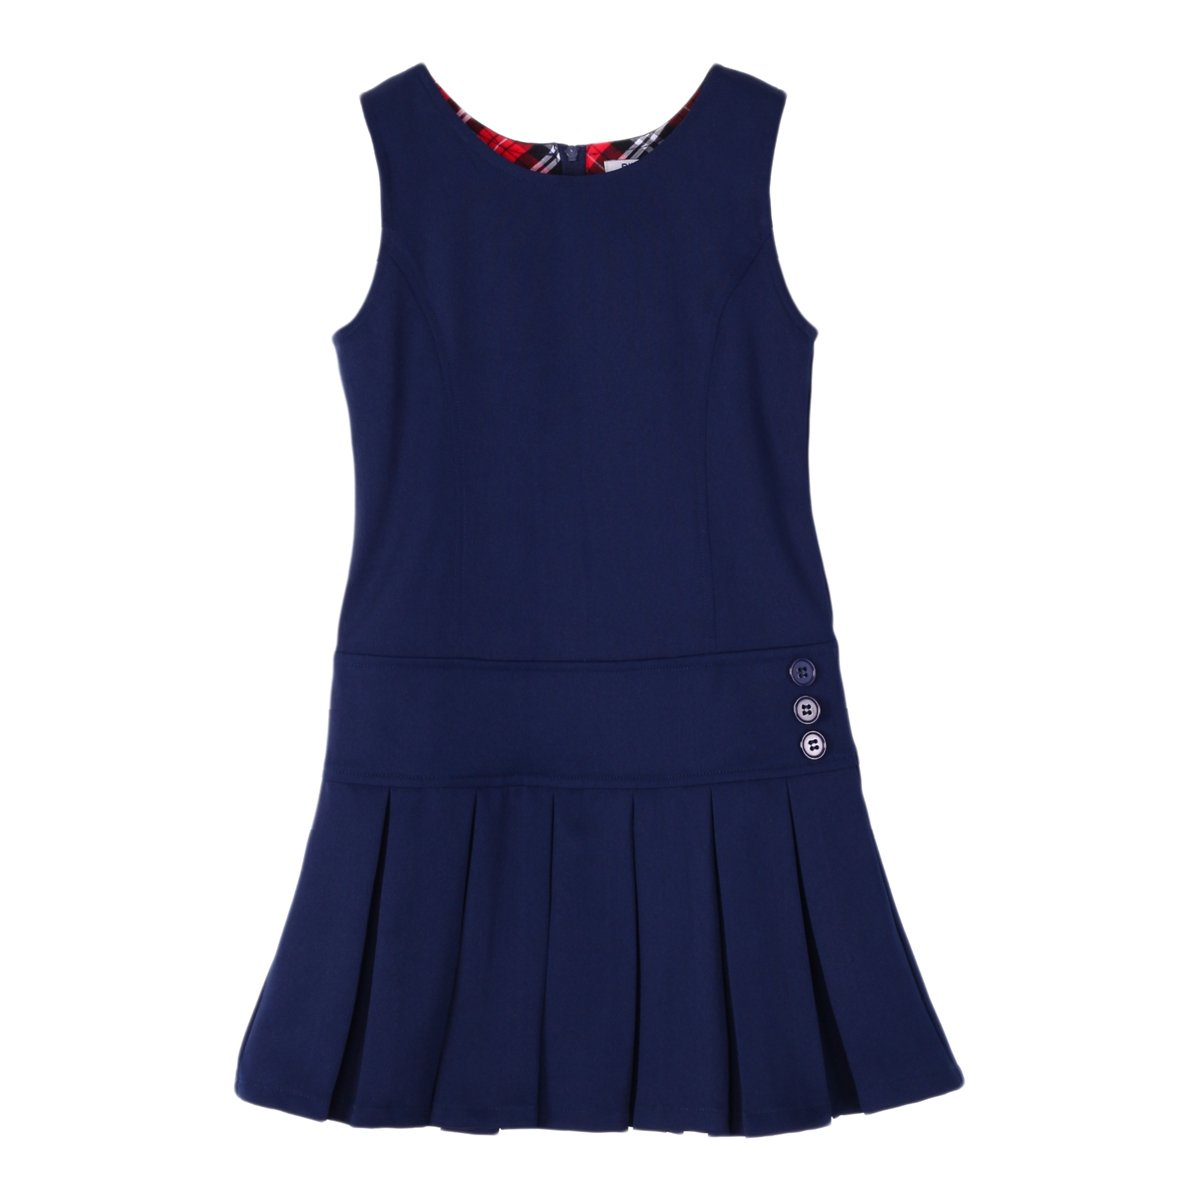 Bienzoe Girl's Stretchy Pleated Hem School Uniforms Jumper Navy 8